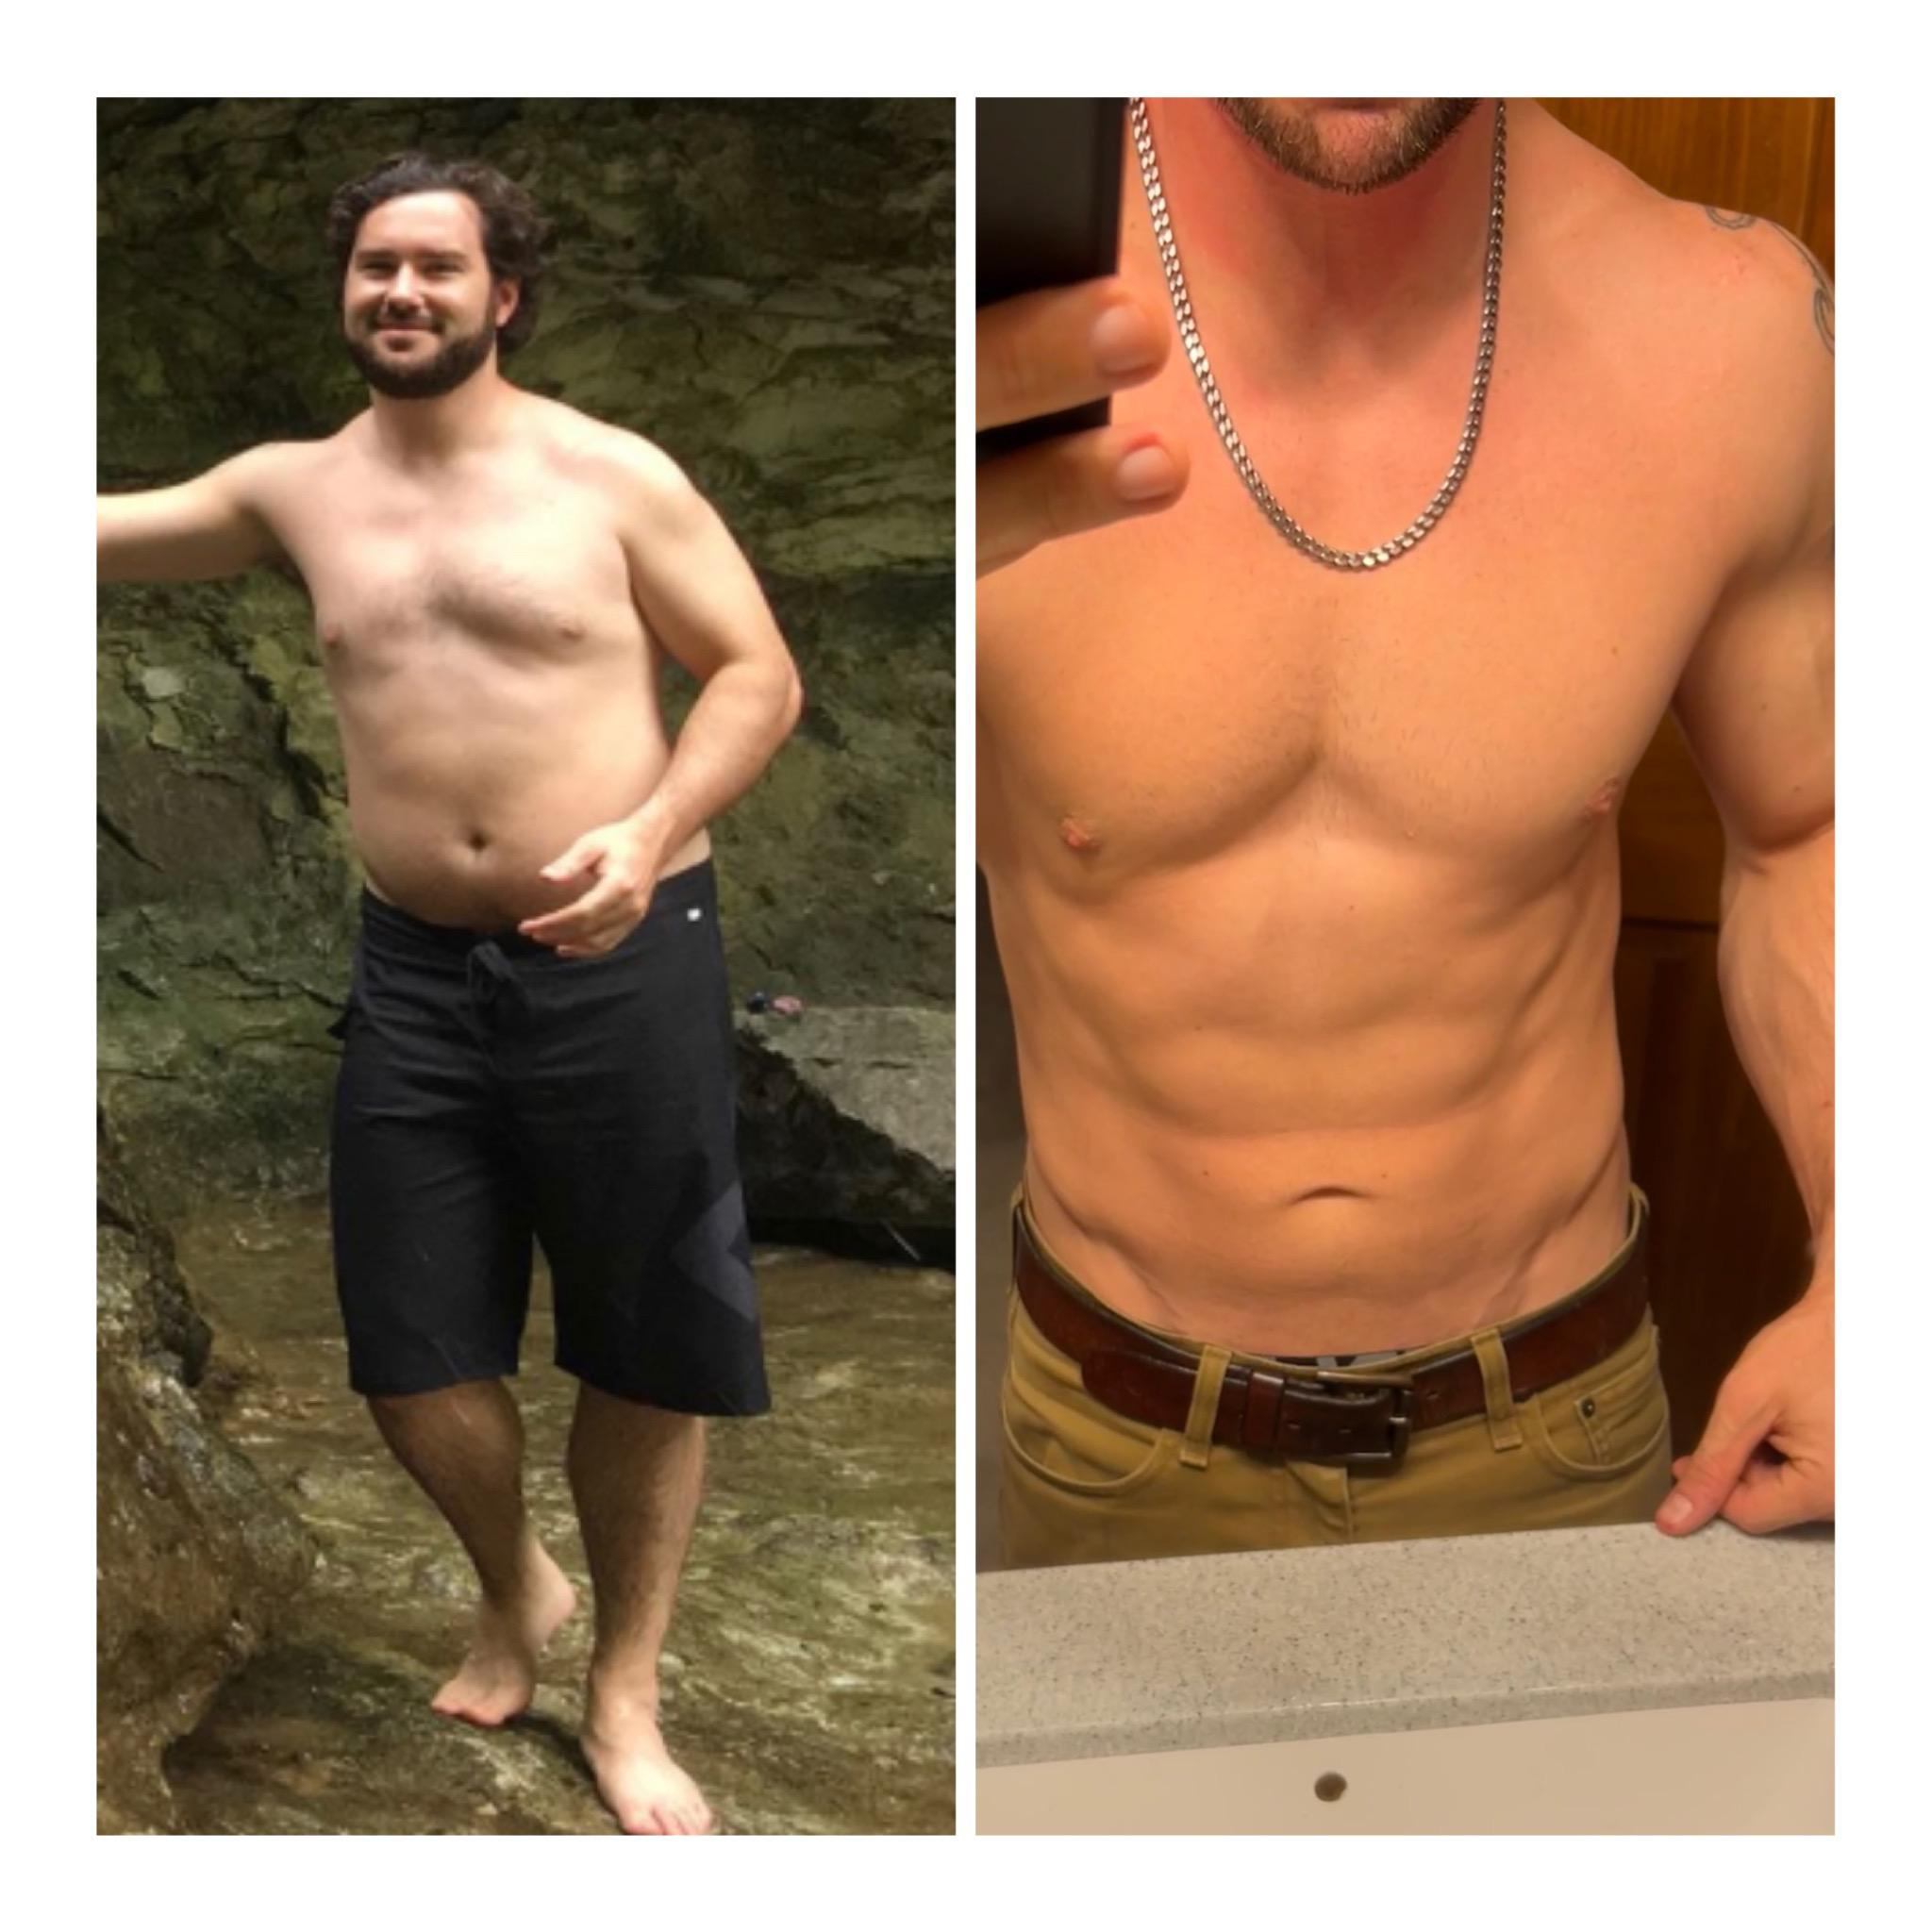 5 foot 10 Male 45 lbs Weight Loss Before and After 220 lbs to 175 lbs